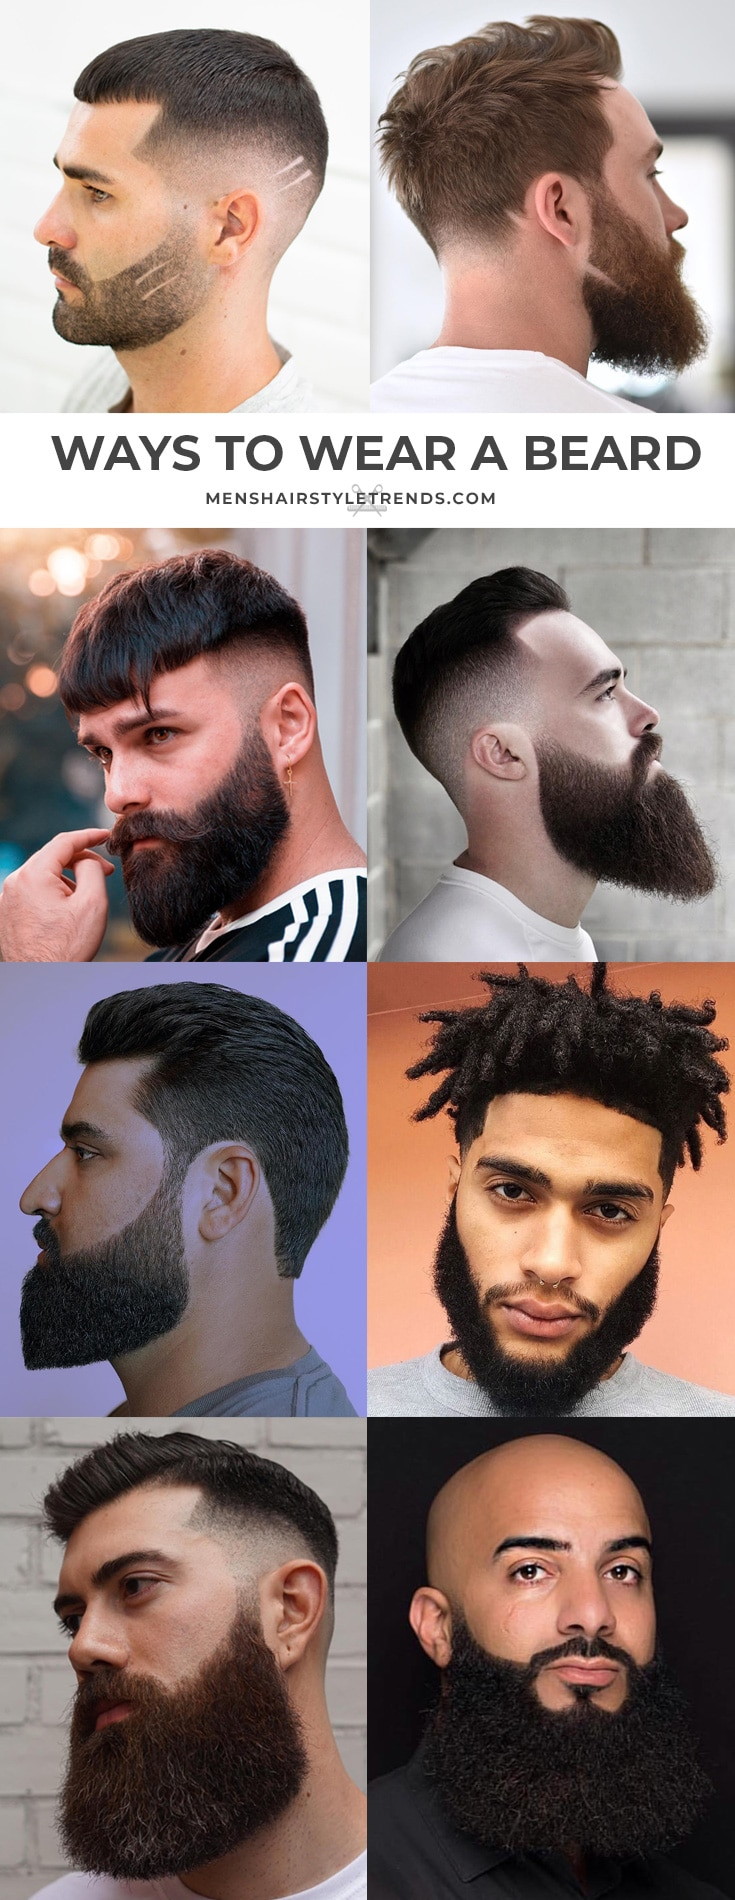 Ways To Wear A Beard